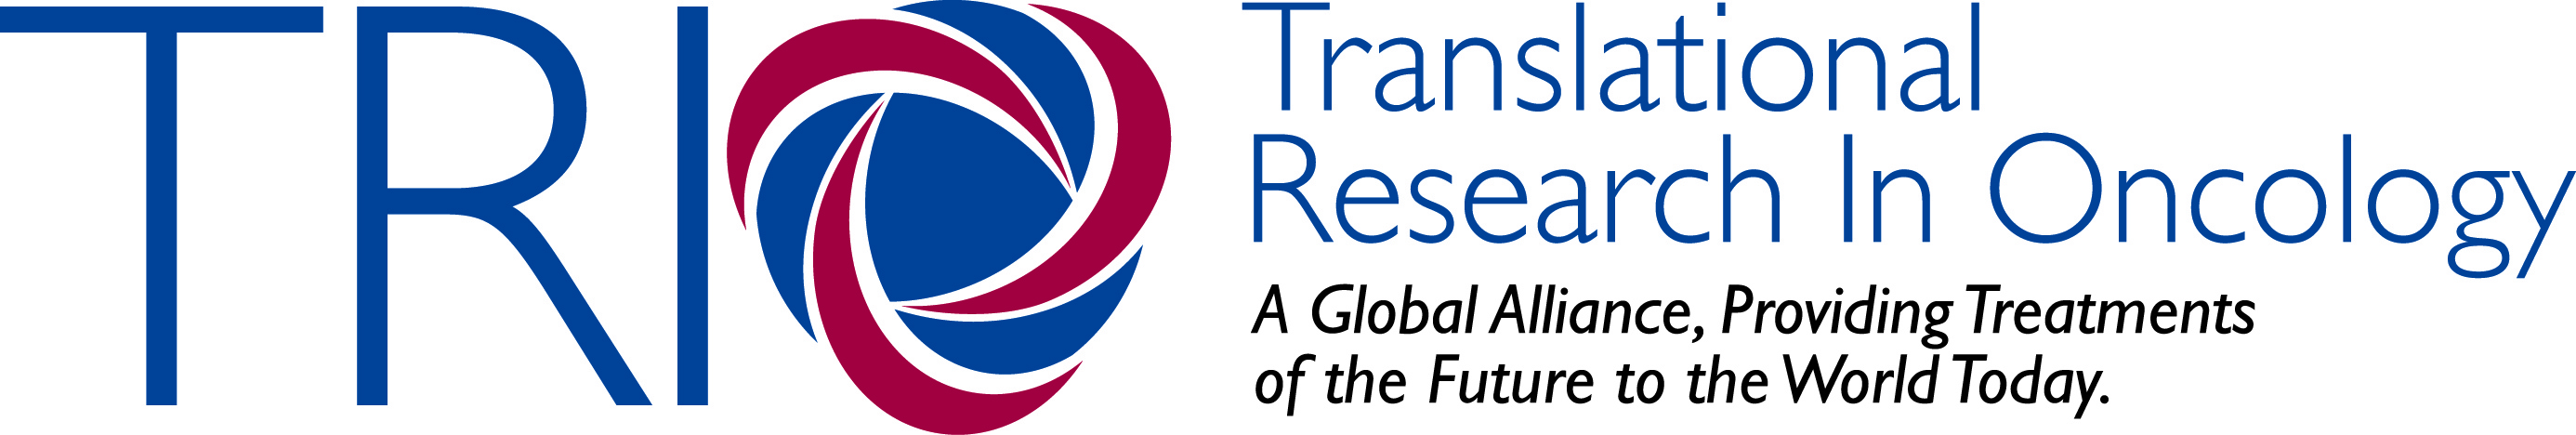 Translational Research in Oncology Logo